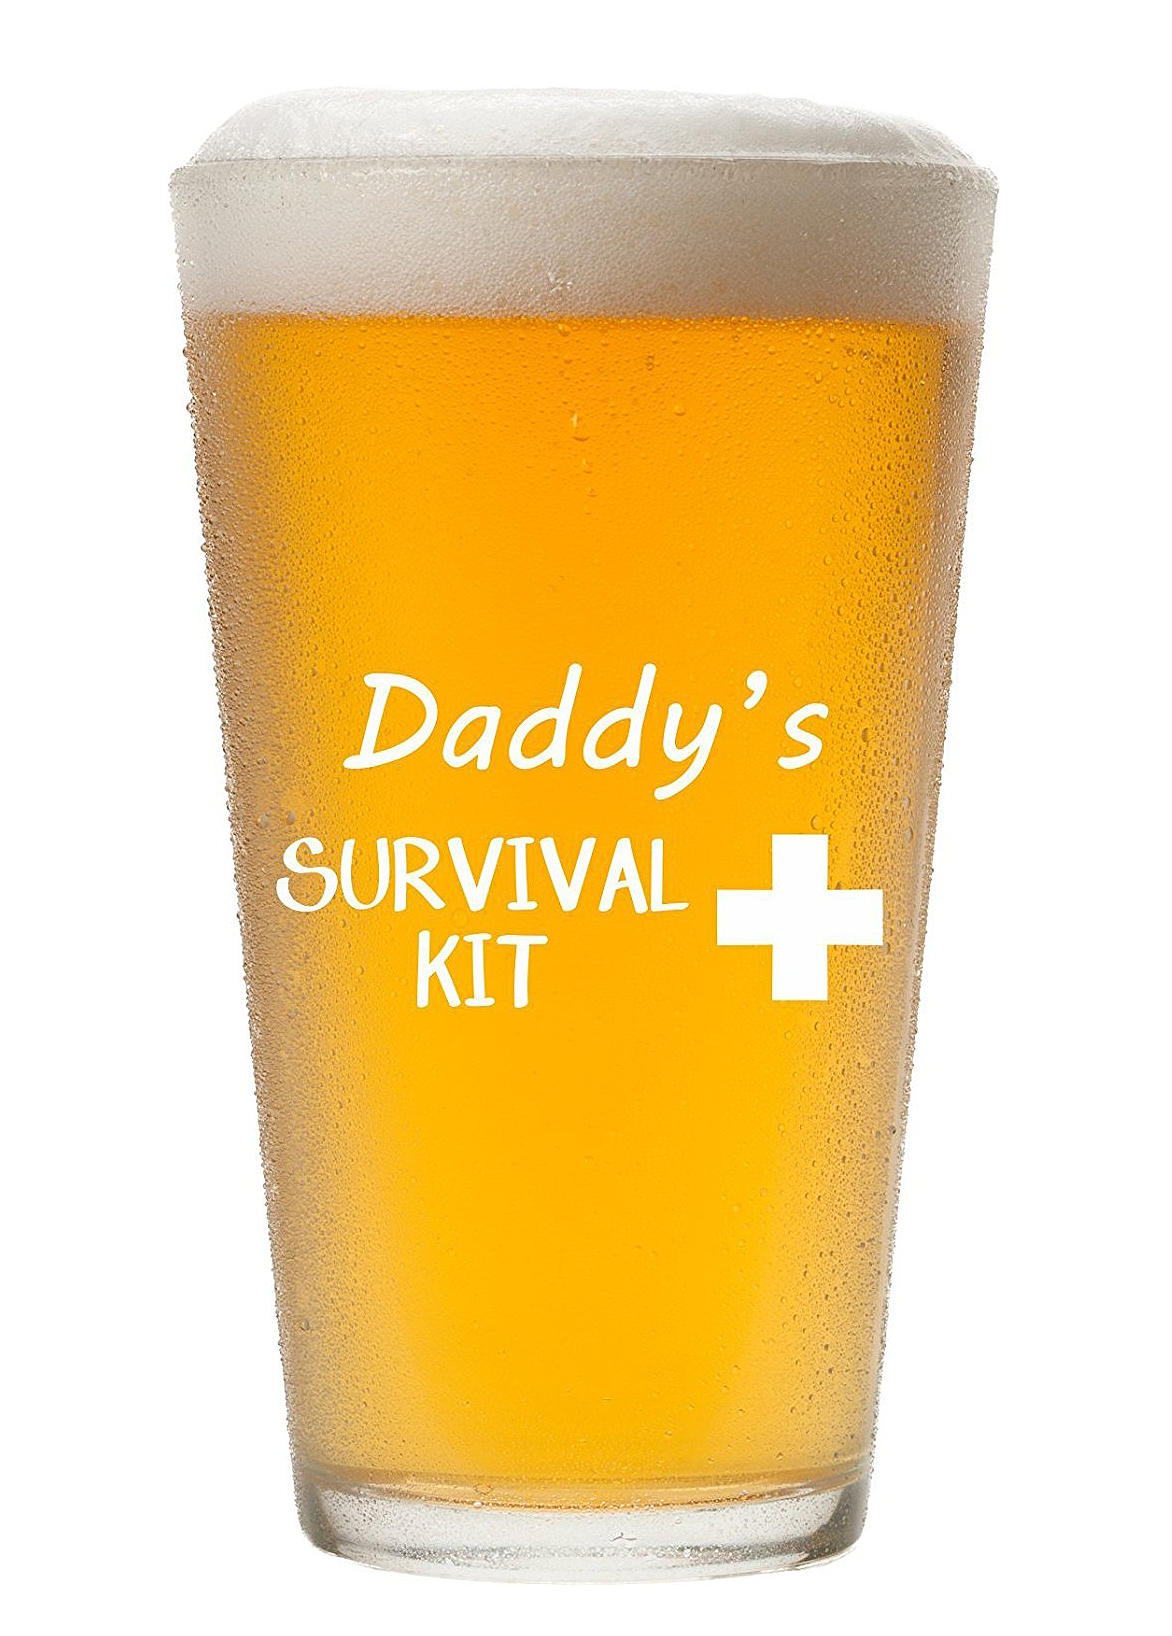 For the New Dad